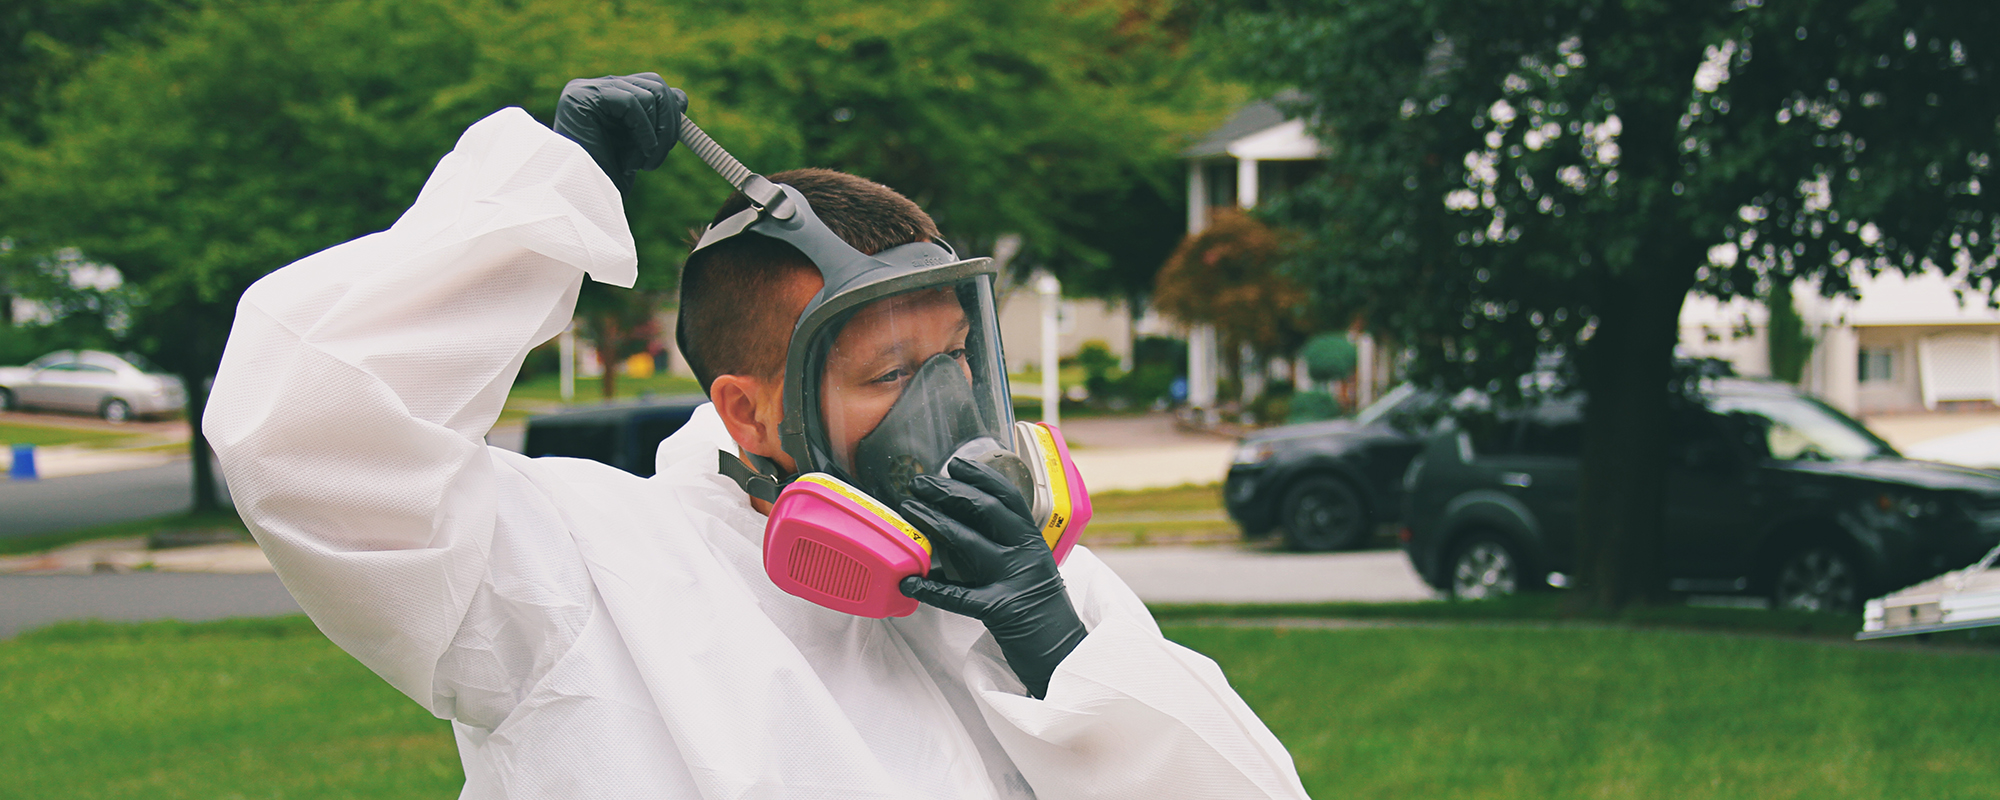 mold-removal-company-nj